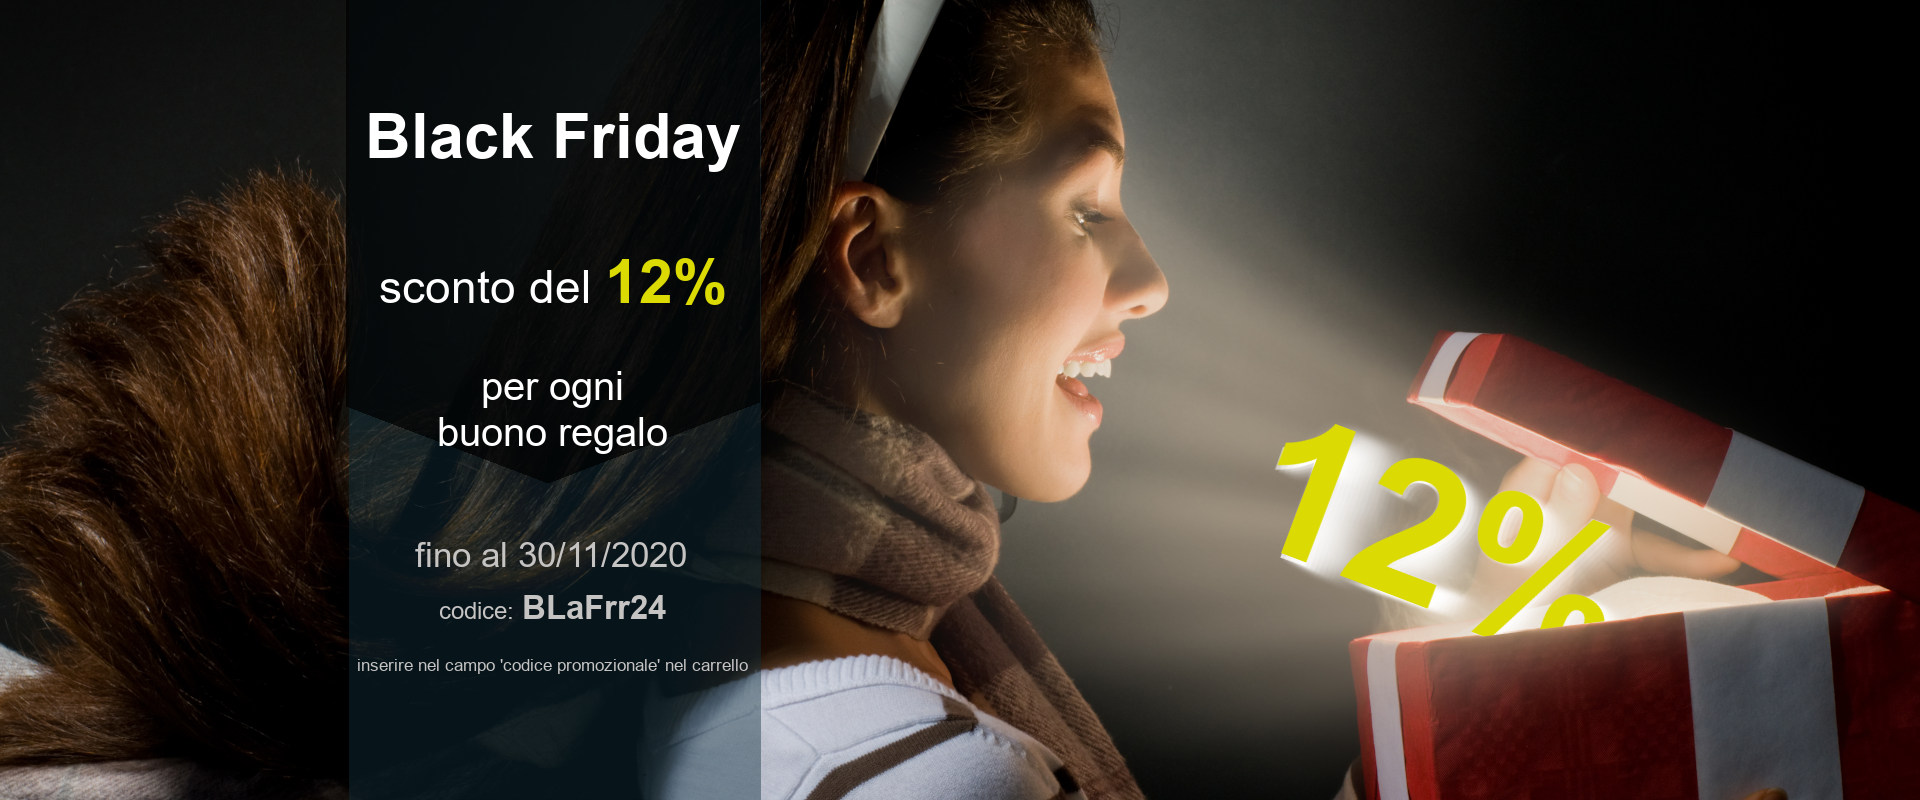 black friday 2020 week end regali24